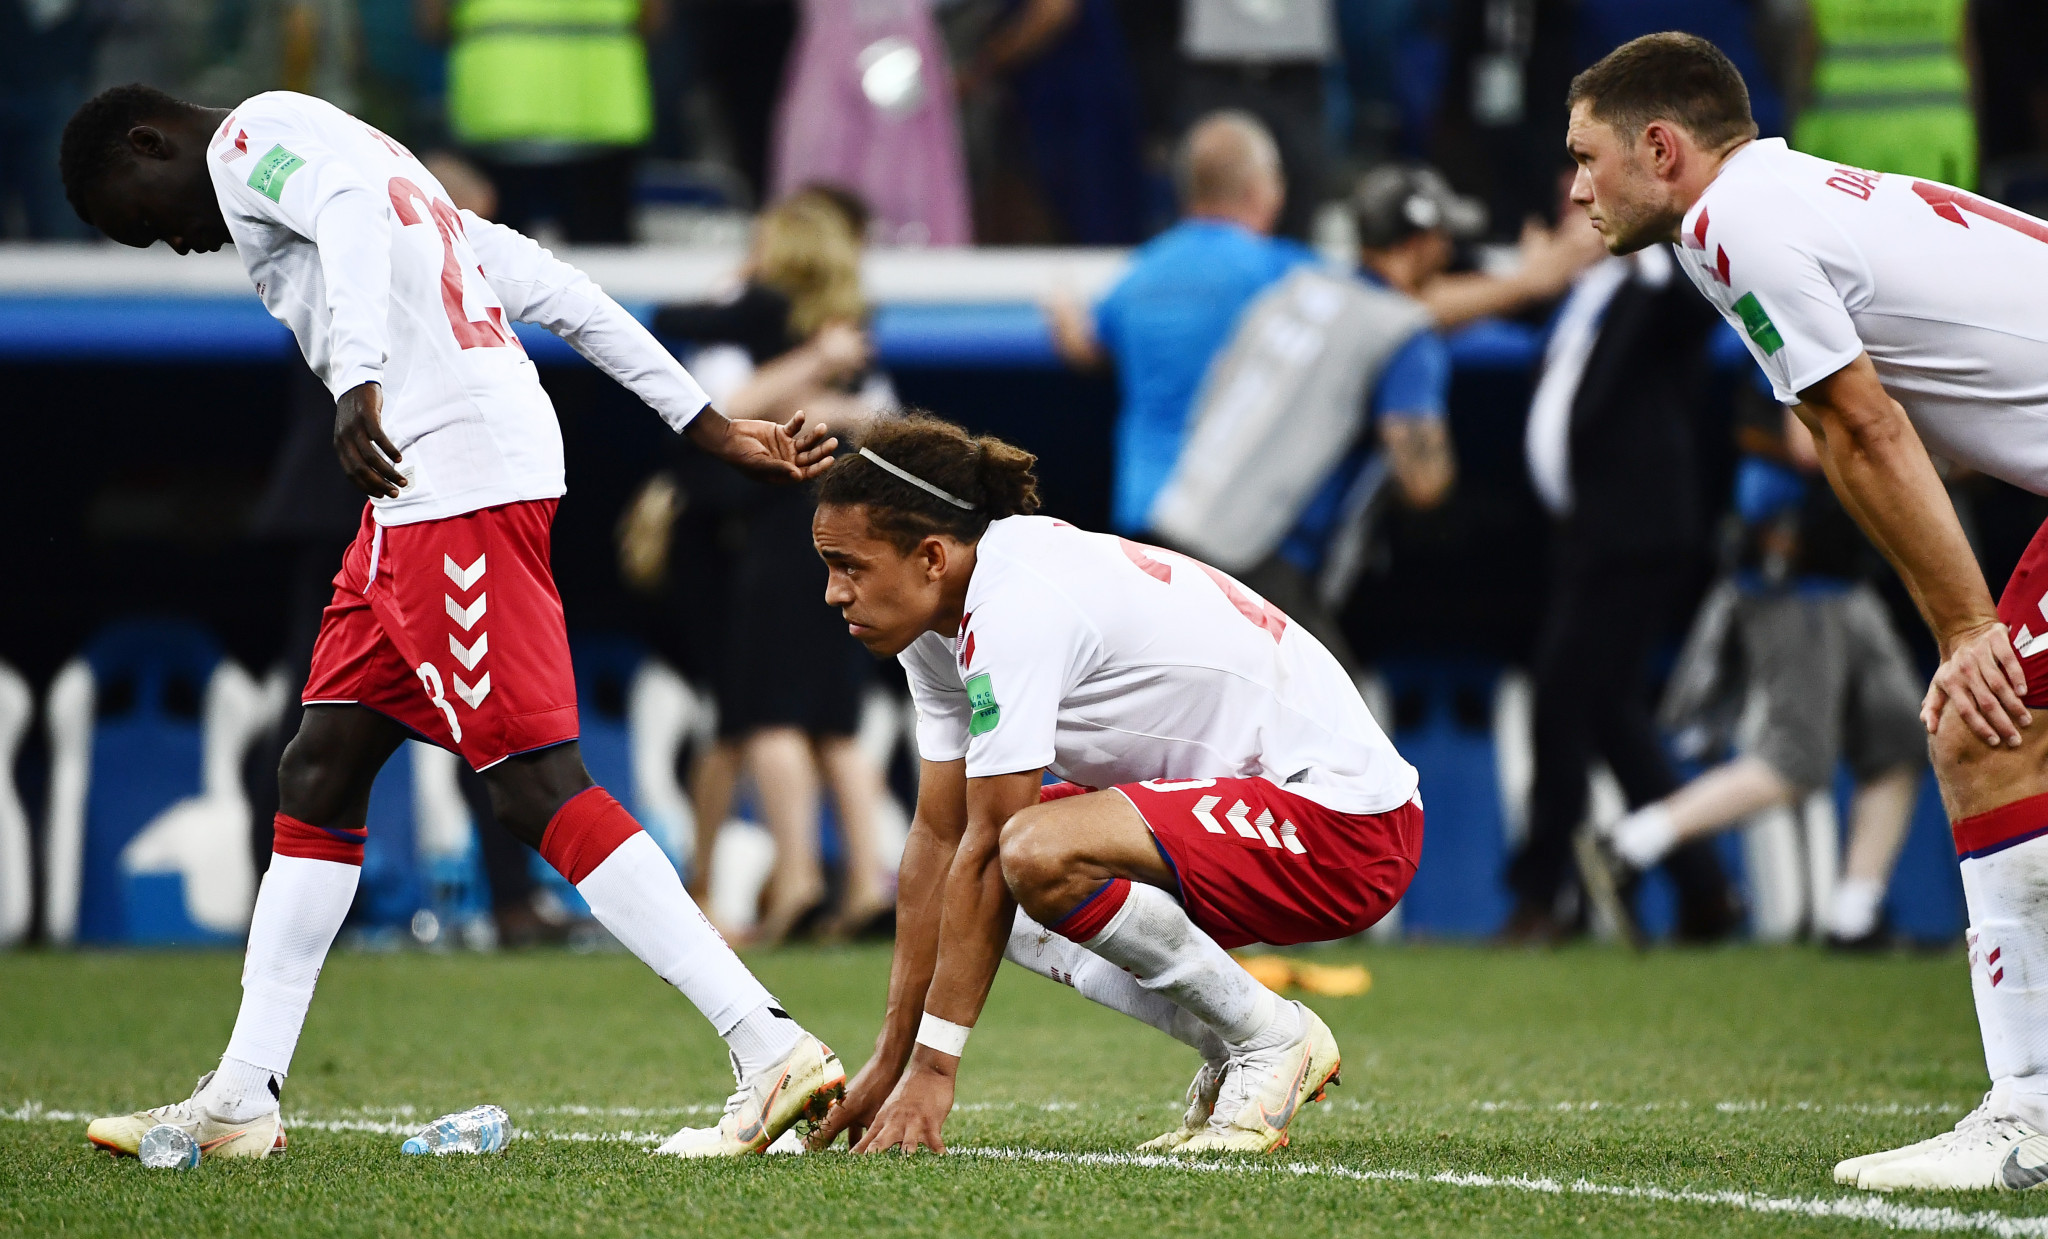 Denmark sink to the ground after their agonising defeat ©Getty Images